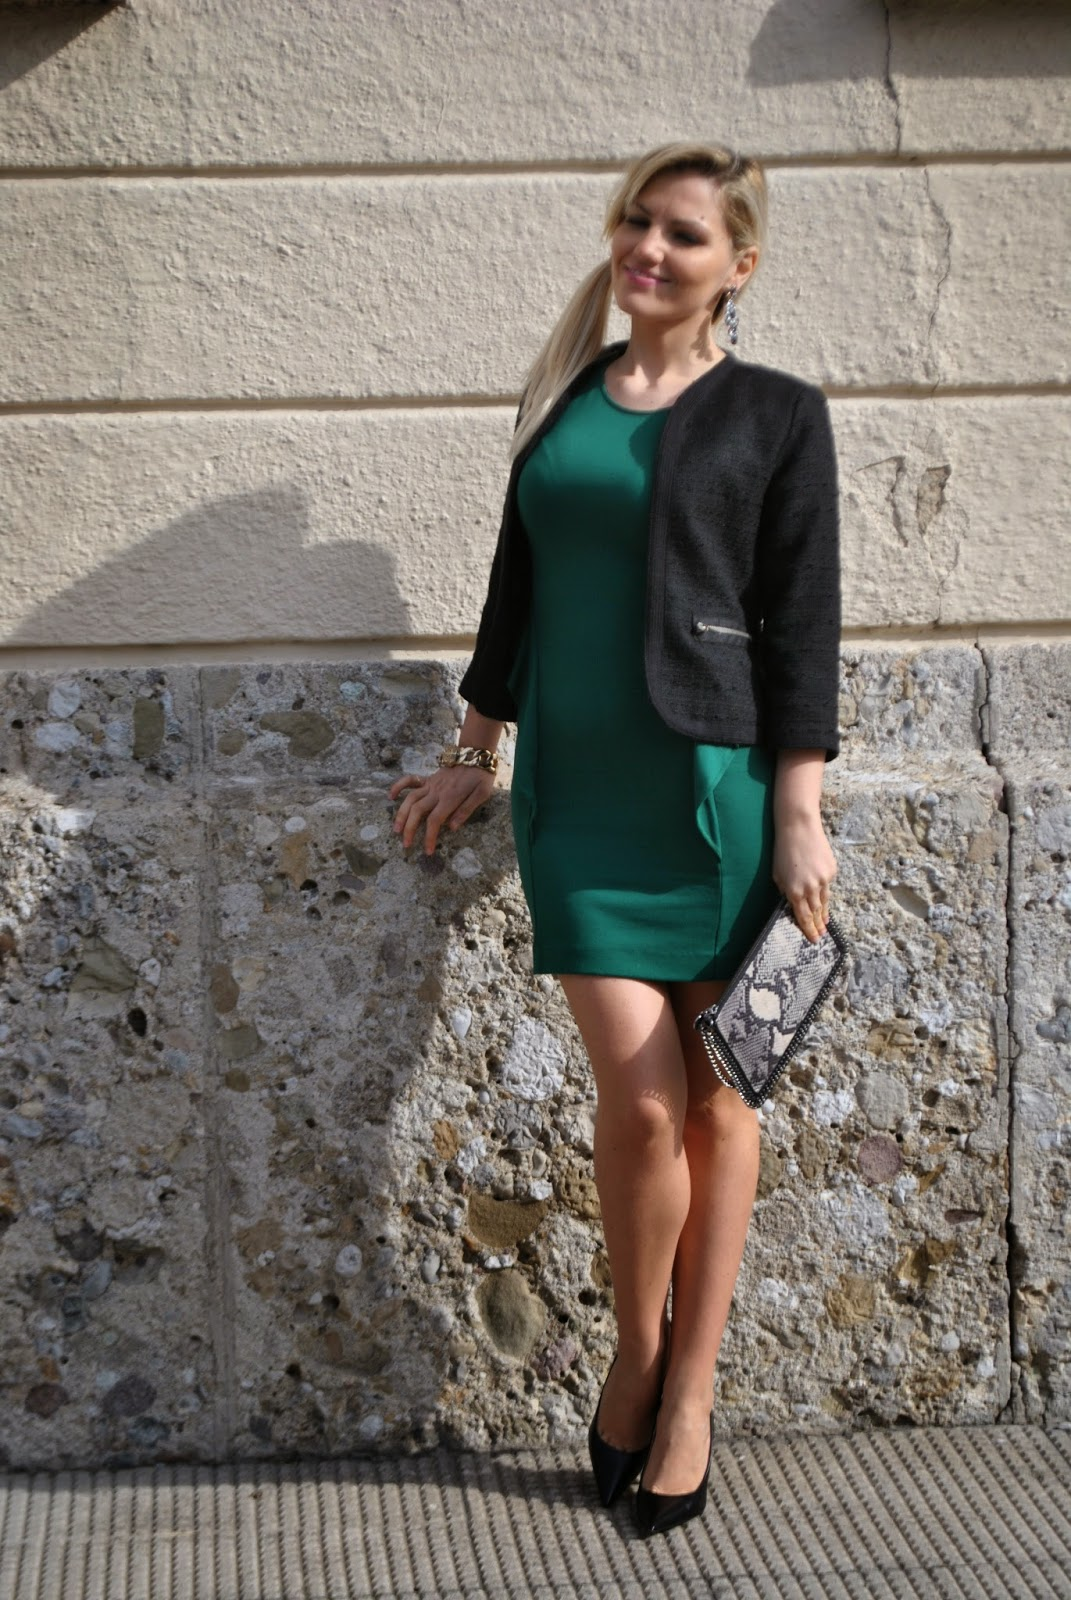 outfit abito verde bottiglia outfit elegante invernale outfit invernali outfit invernale da donna elegante outfit verde abbinamento verde e nero come abbinare il verde abito verde giacca nera mariafelicia magno colorblock by felym mariafelicia magno fashion blogger blog di moda italiani blogger italiane di moda color-block by felym moda fashion green dress how to wear green zara dress  winter outfits how t wear green come abbinare il verde falabella bag majique bracciale majique blonde girl acconciatura coda laterale